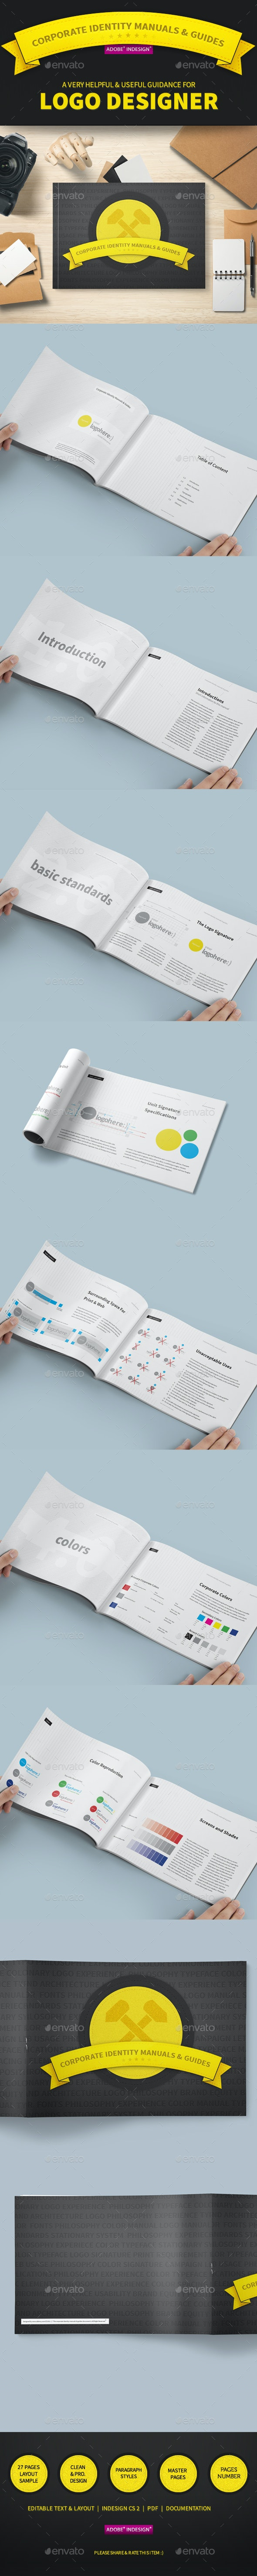 Corporate Identity Manuals and Guides Template - Corporate Brochures